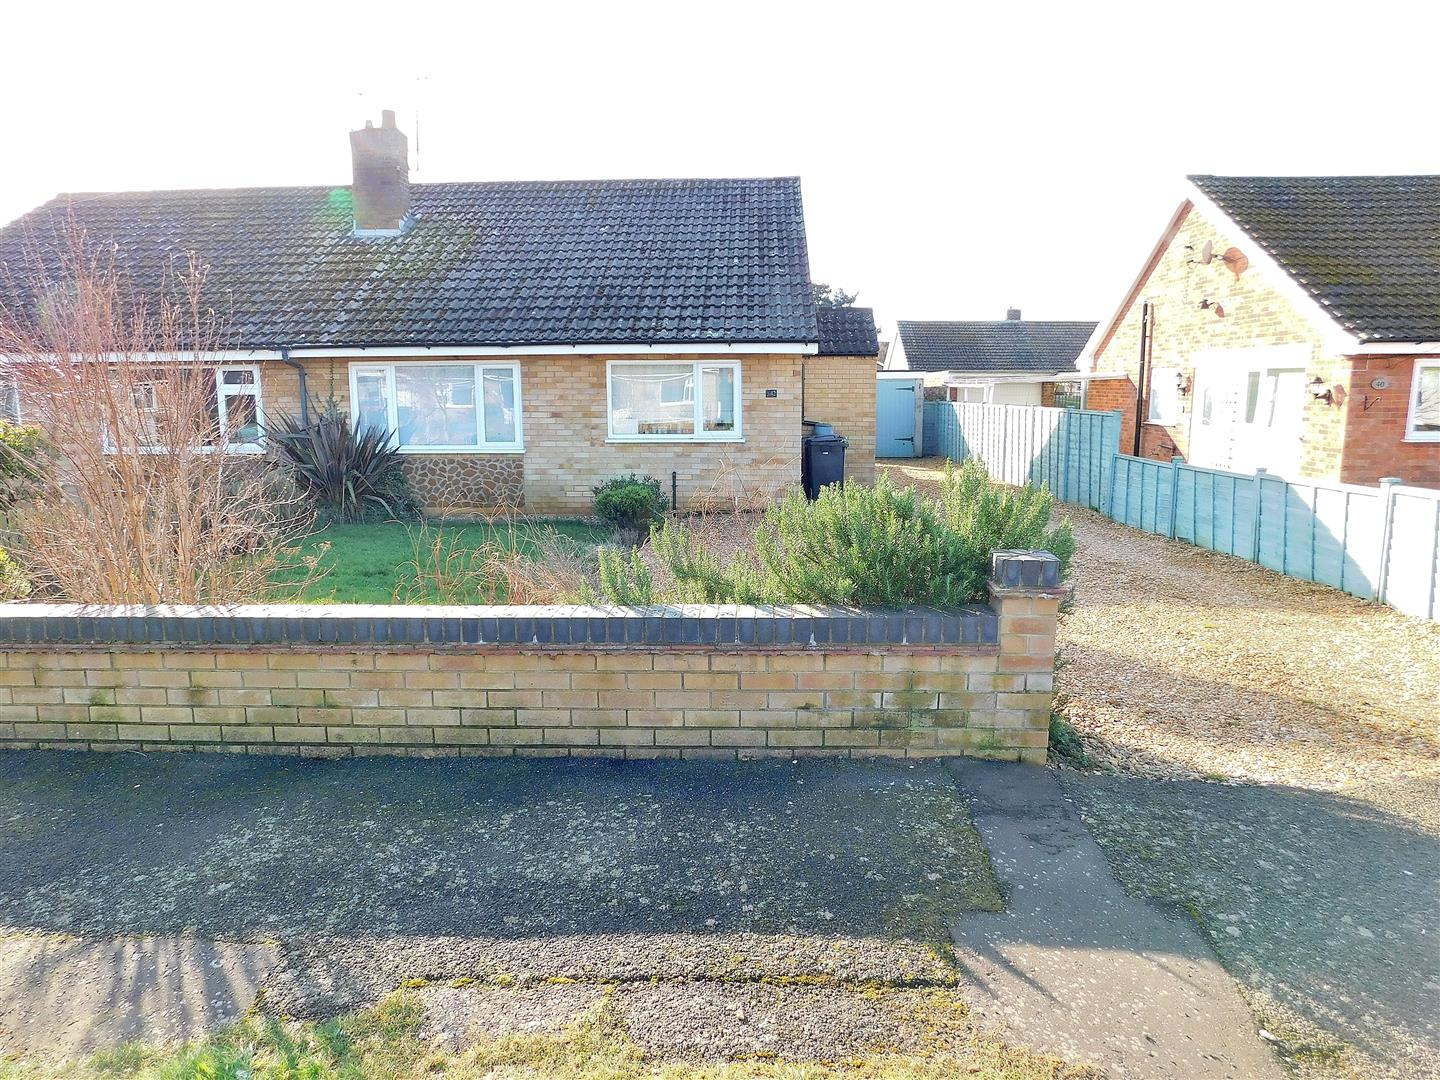 2 bed semi-detached bungalow for sale in King's Lynn, PE31 6JH, PE31